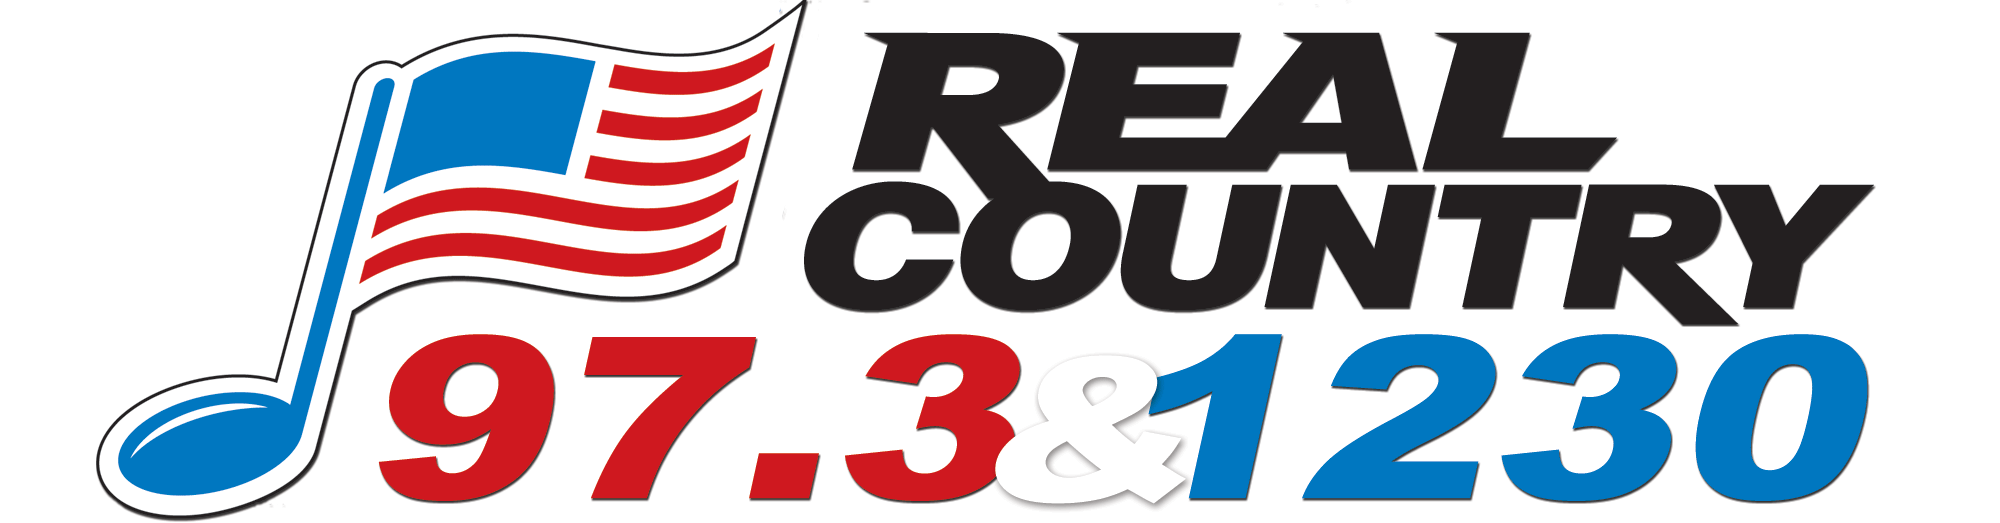 Real Country 1230 and 97.3 WHCO